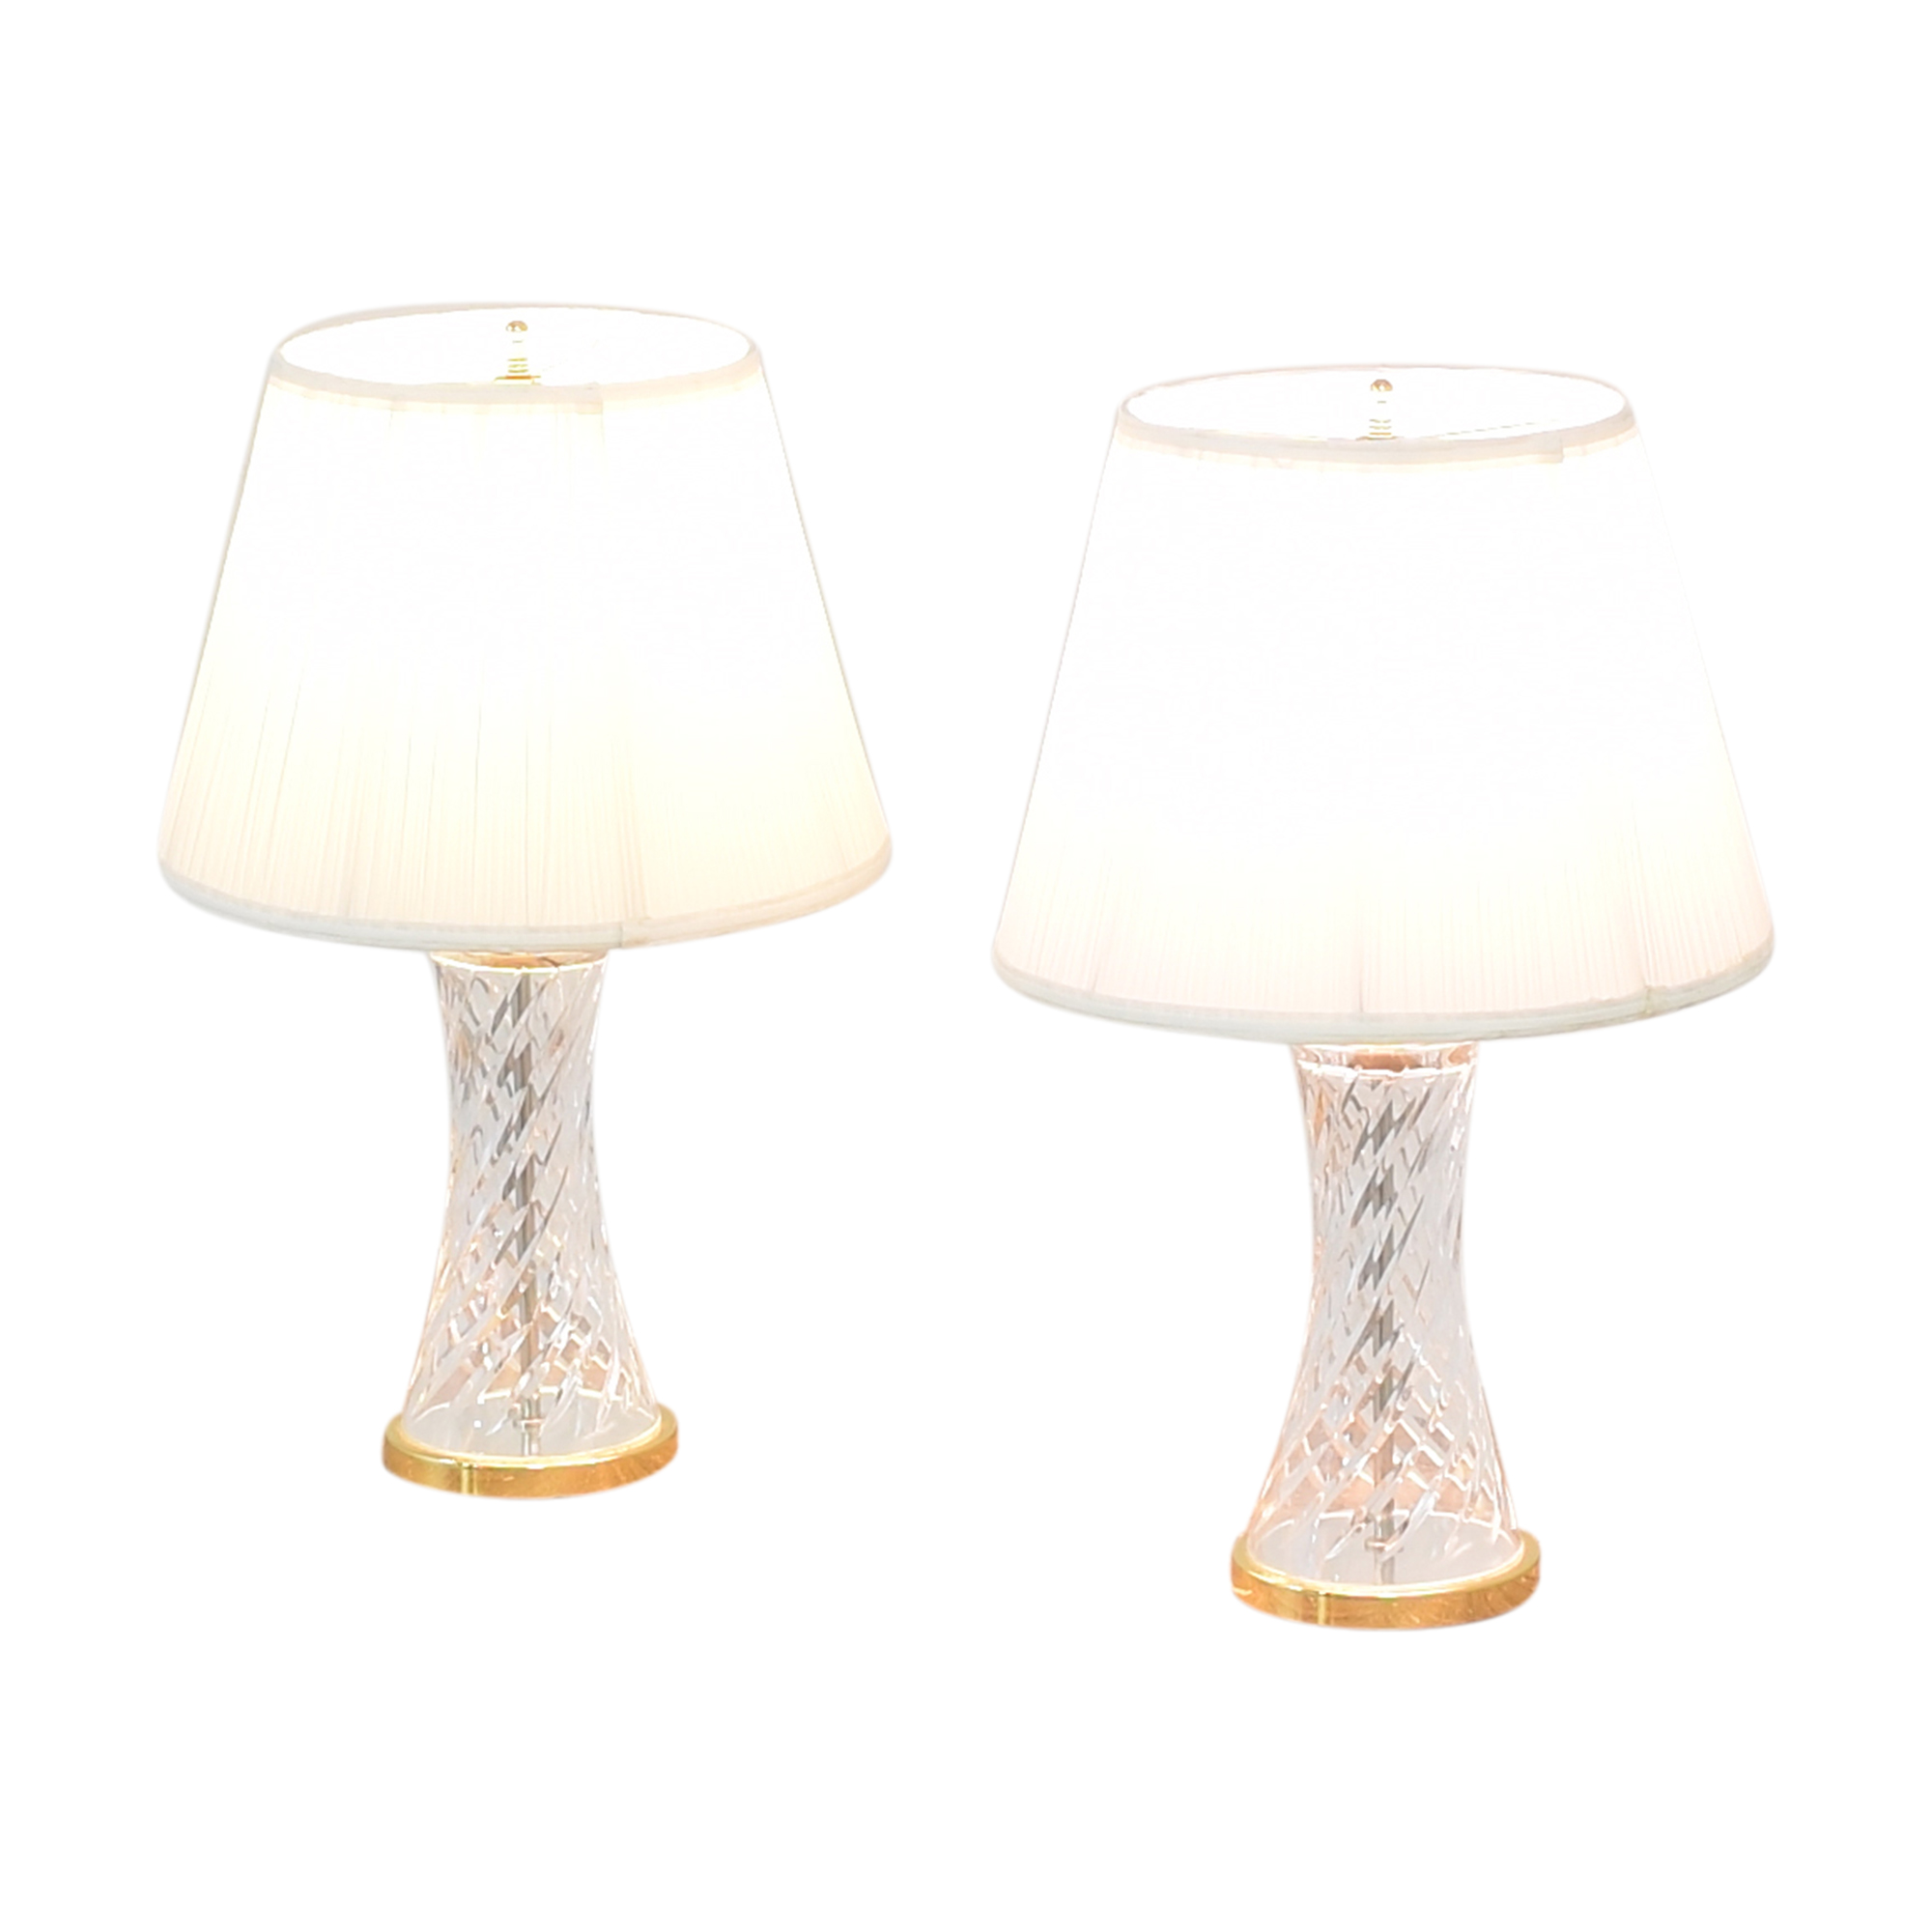 Waterford Table Lamps / Decor